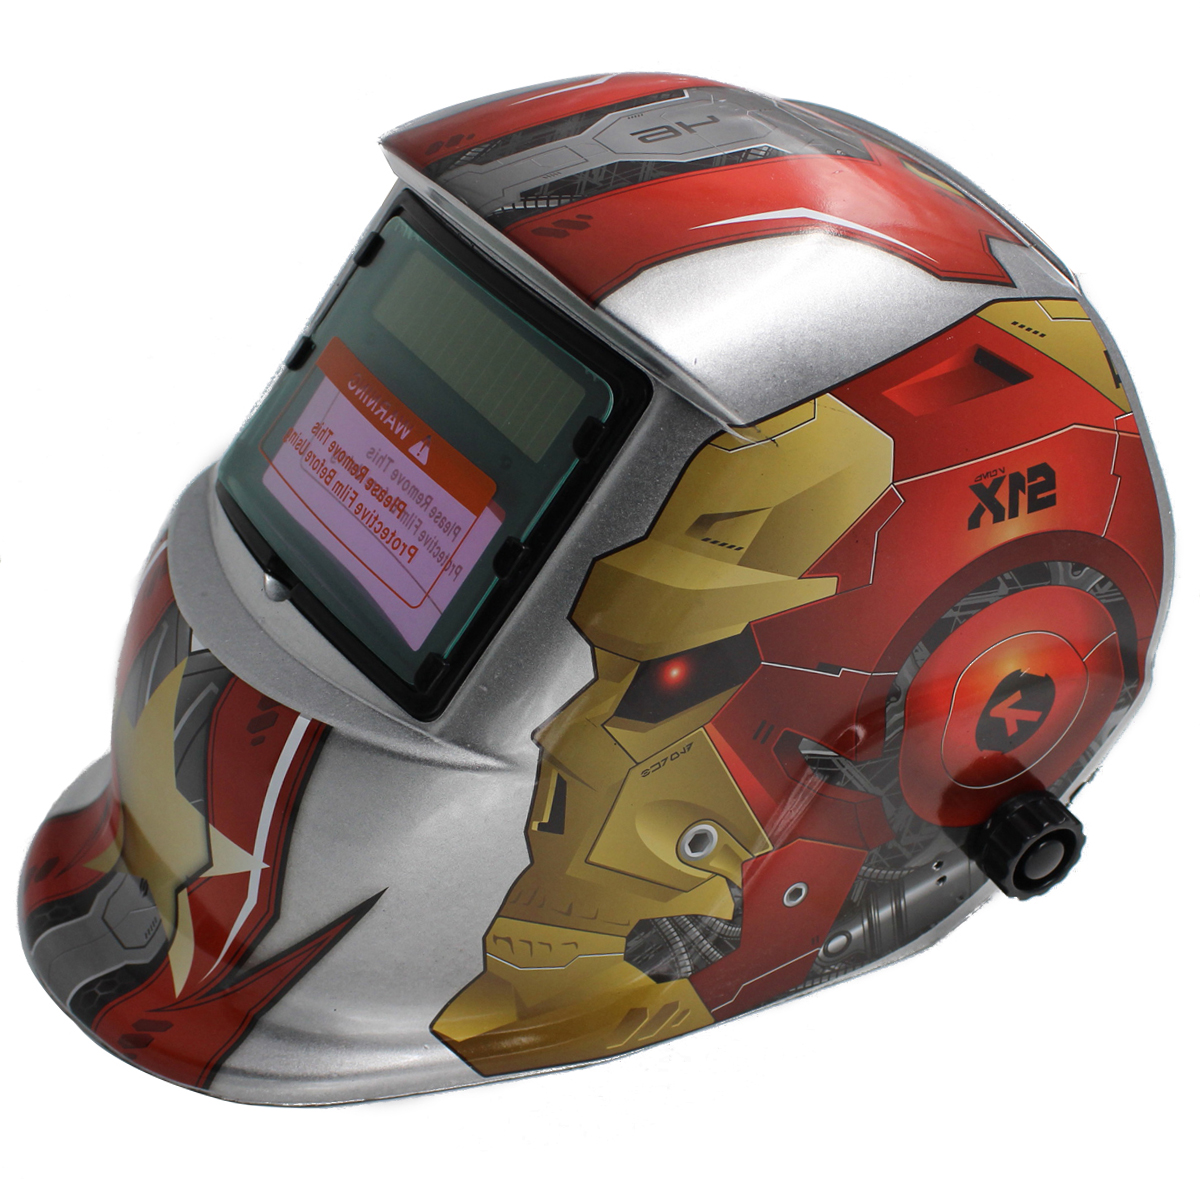 Mayitr Welding Helmet Super Solar Auto Darkening Electric Grinding Welding Mask Protective Welder Cap Welding Lens Machine red standard design solar welding helmet auto darkening electric grinding welding face mask welder cap lens cobwebs and skull